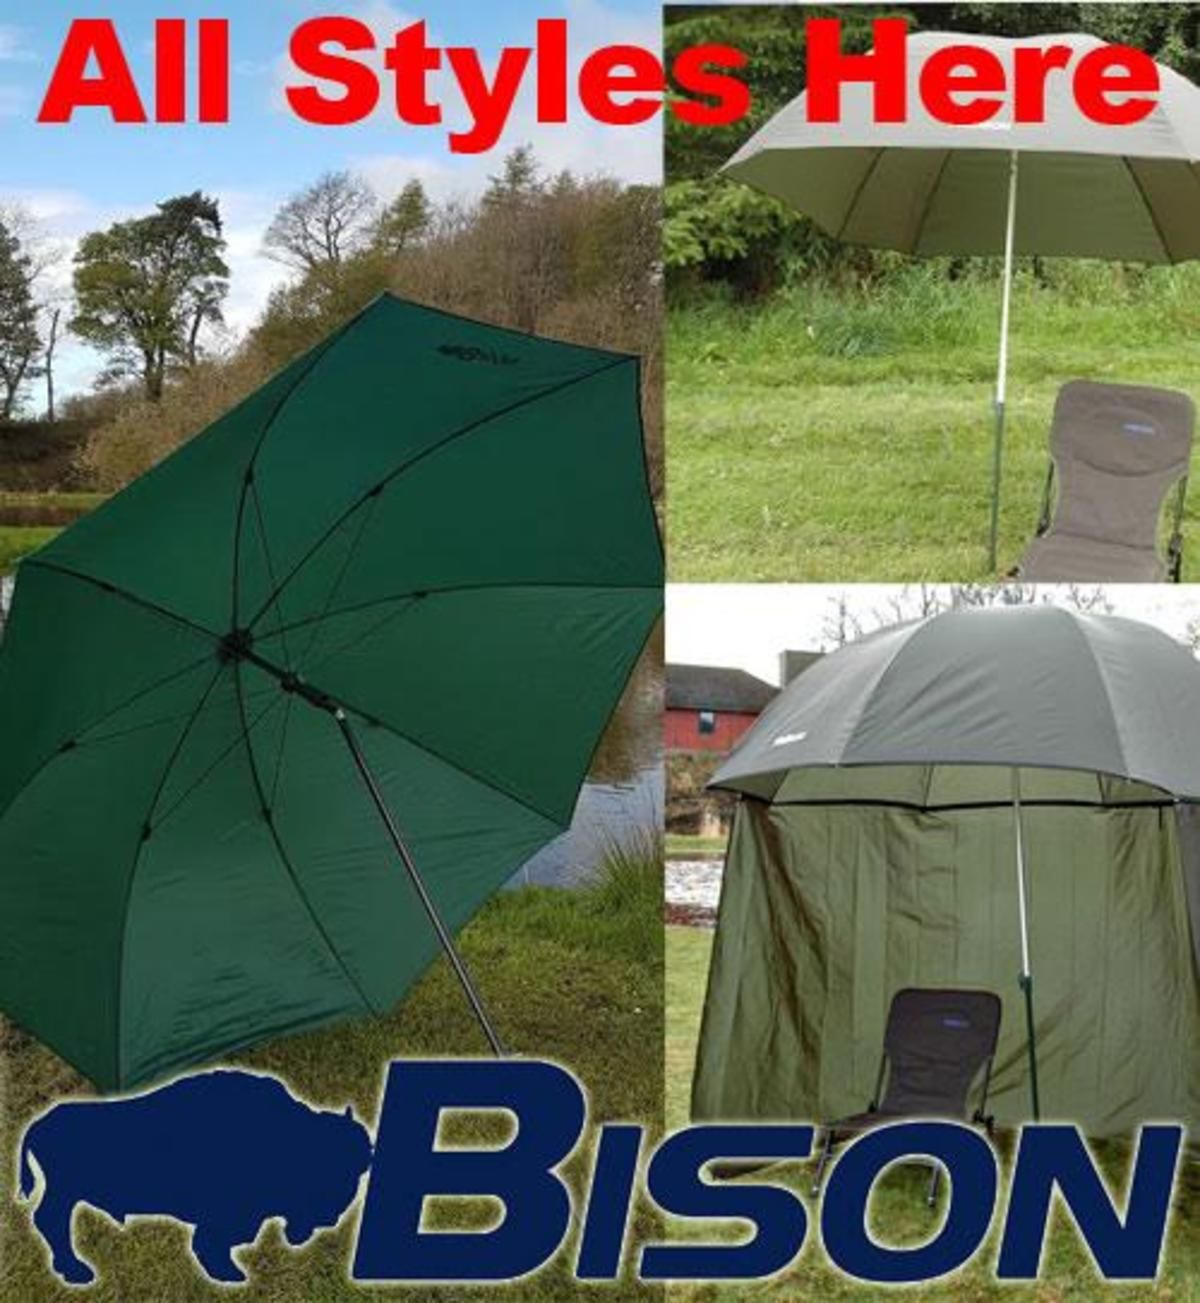 BISON TOP TILT UMBRELLA BROLLY FISHING SHELTER ALL STYLES HERE